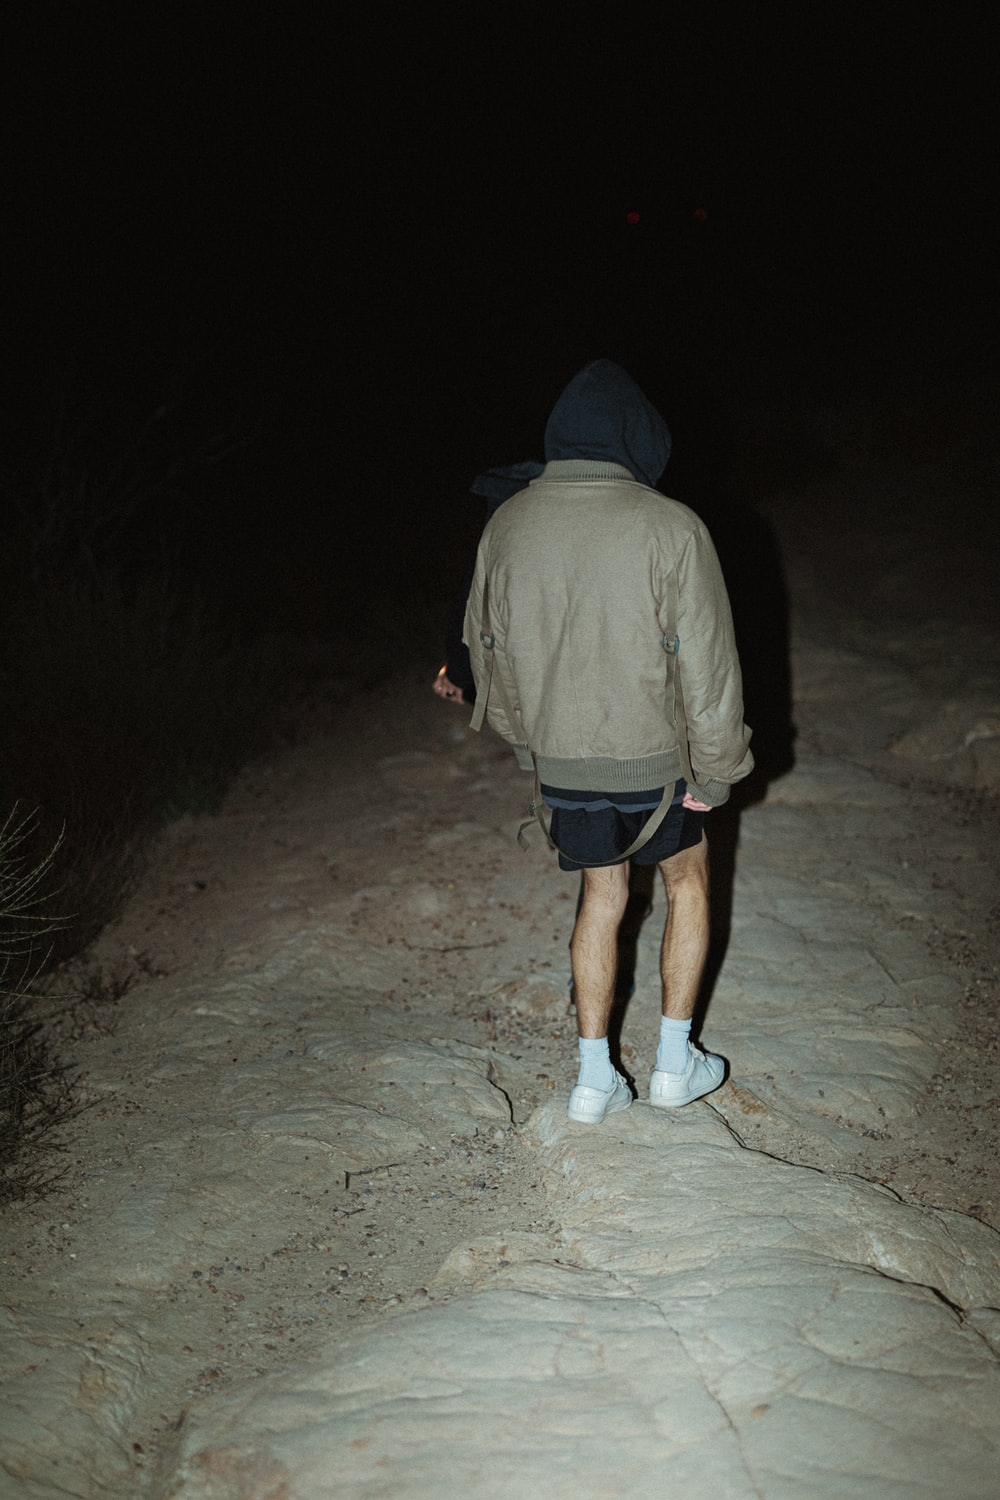 man in gray hoodie and blue shorts standing on gray sand during nighttime